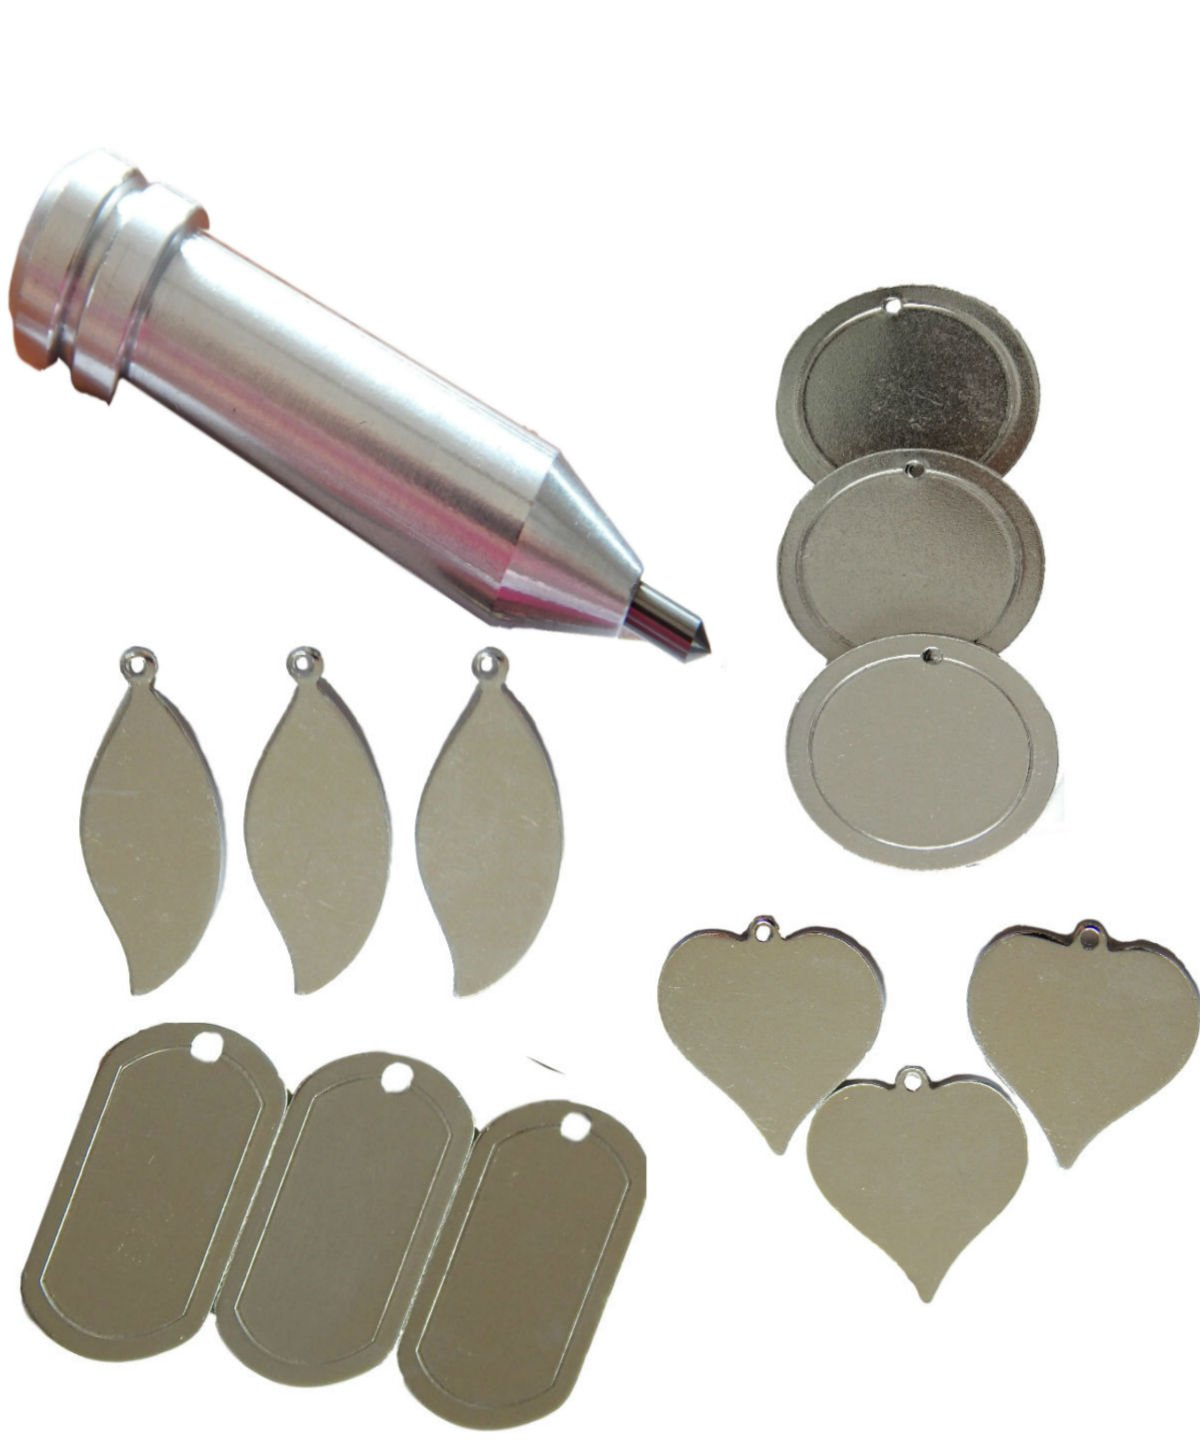 Engraving Tool for the Cricut MAKER and EXPLORE by Chomas Creations and 12 Stamping Blanks: Round, Heart,Leaf and Dog Tags (13 pieces) 4336980902